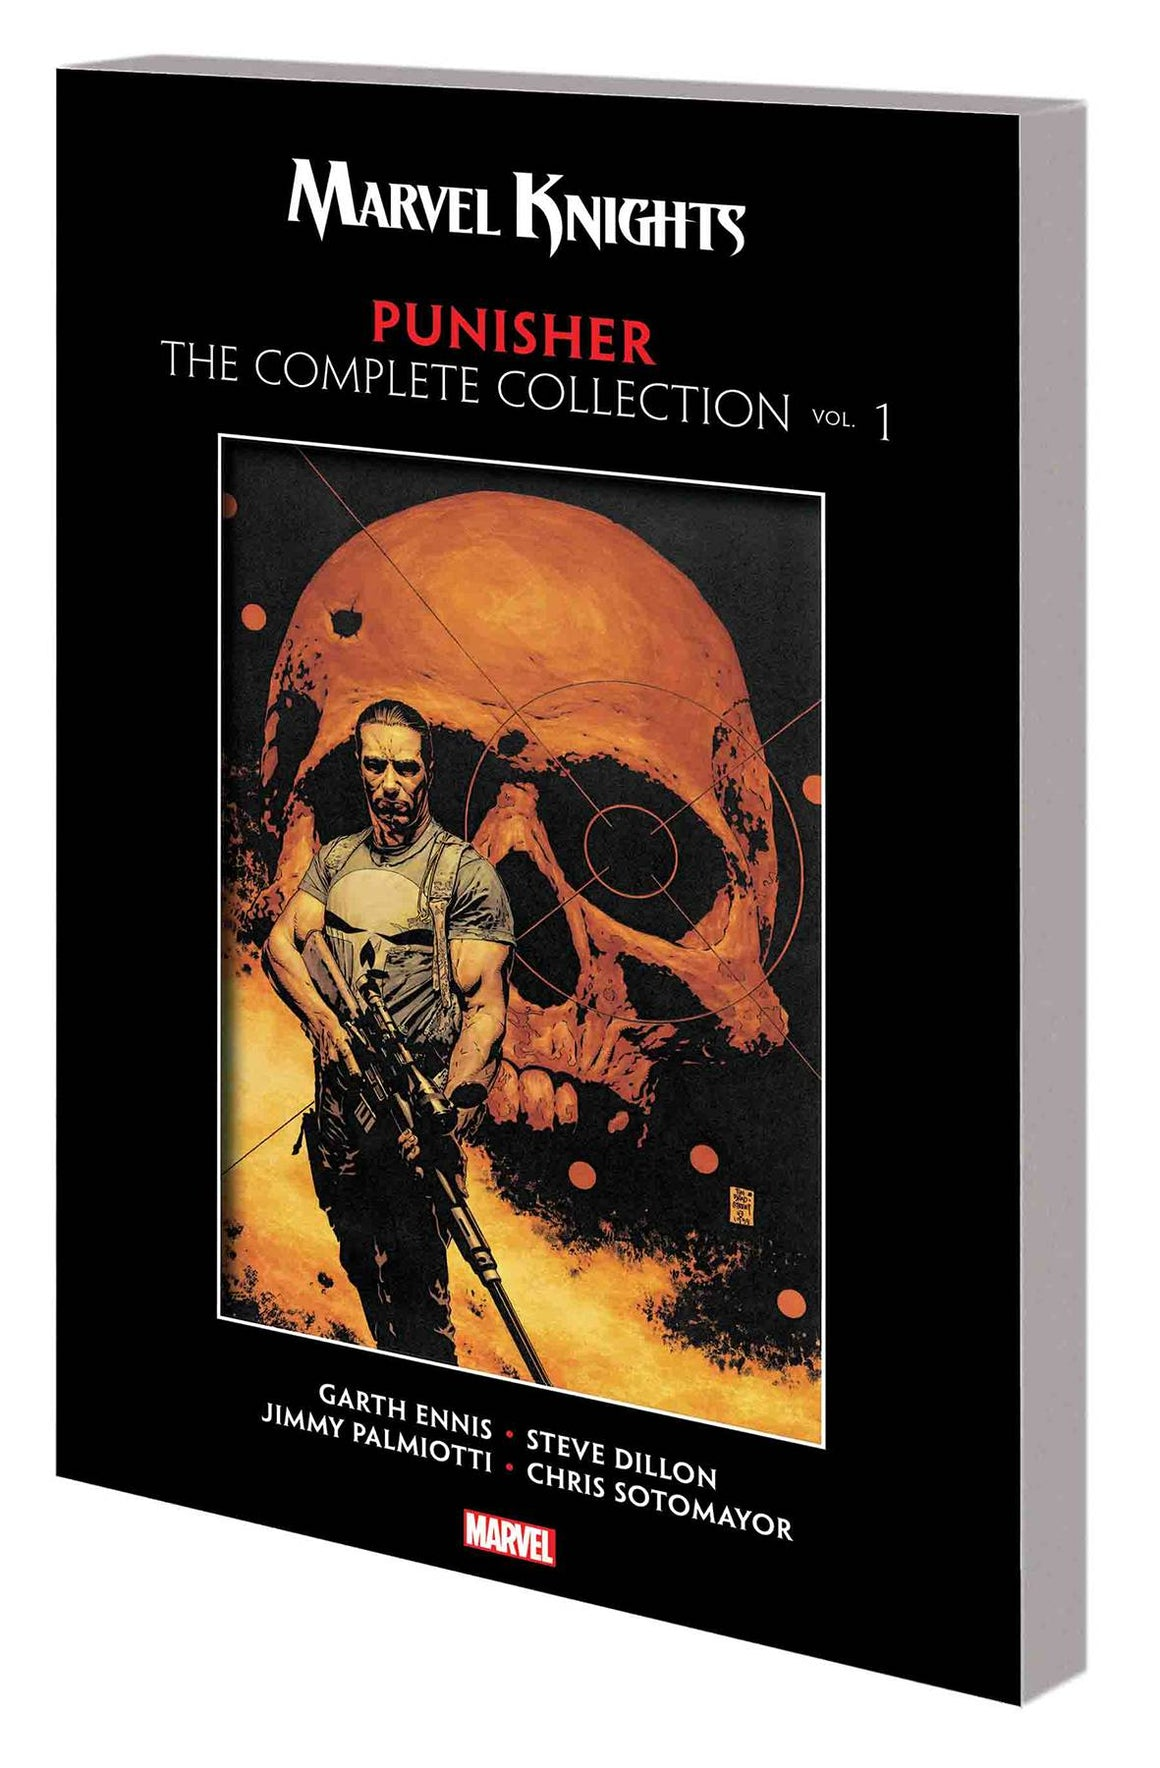 MARVEL KNIGHTS PUNISHER BY ENNIS COMPLETE COLLECTION TP